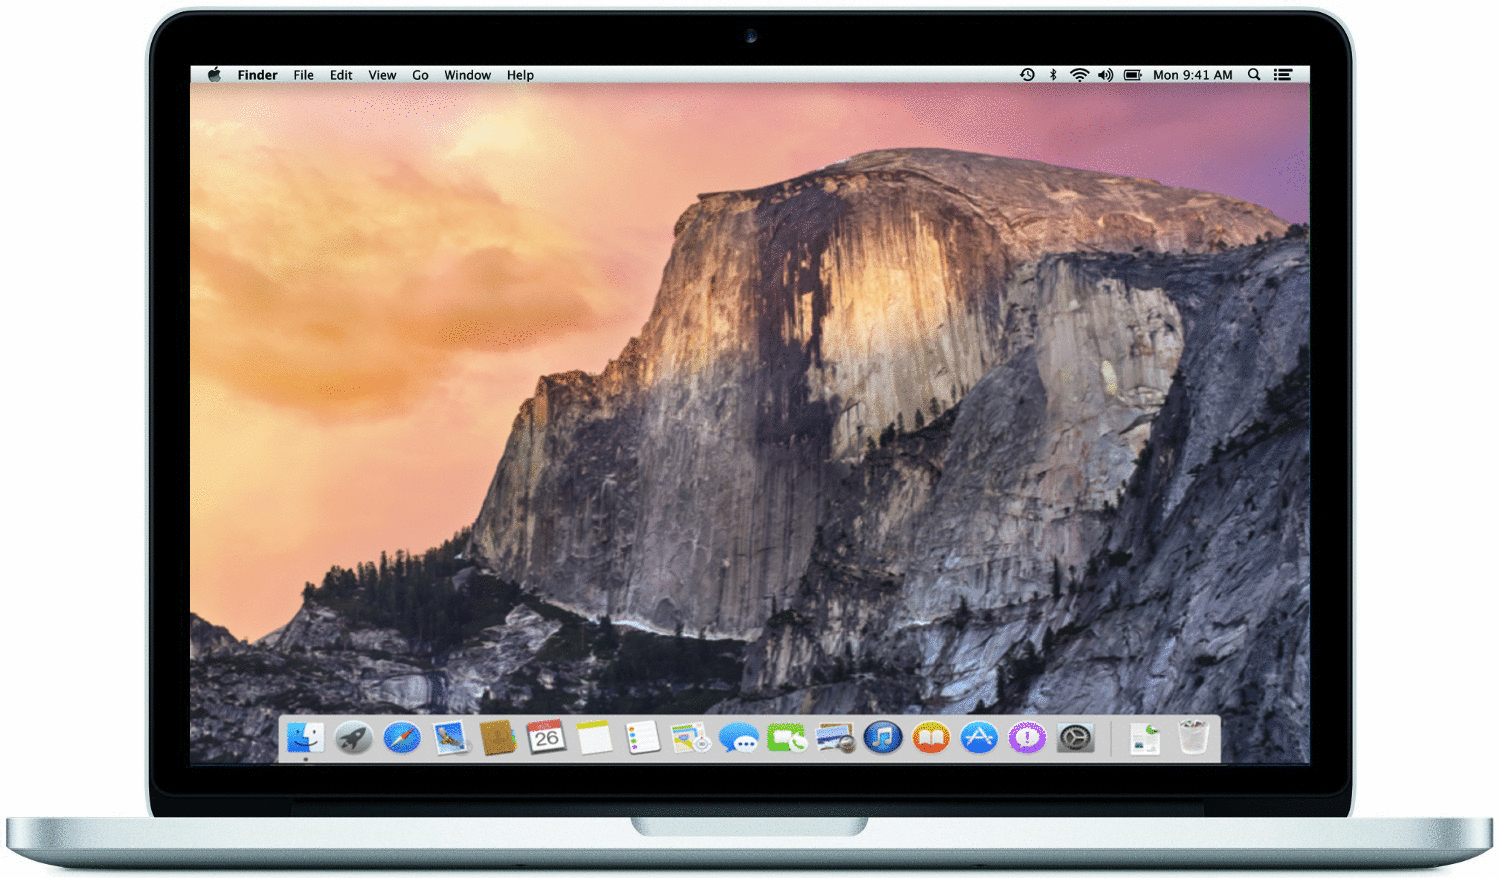 Apple MacBook Pro CTO 13.3 (Retina Display) 3.1 GHz Intel Core i7 16 GB RAM 128 GB PCIe SSD [Early 2015]